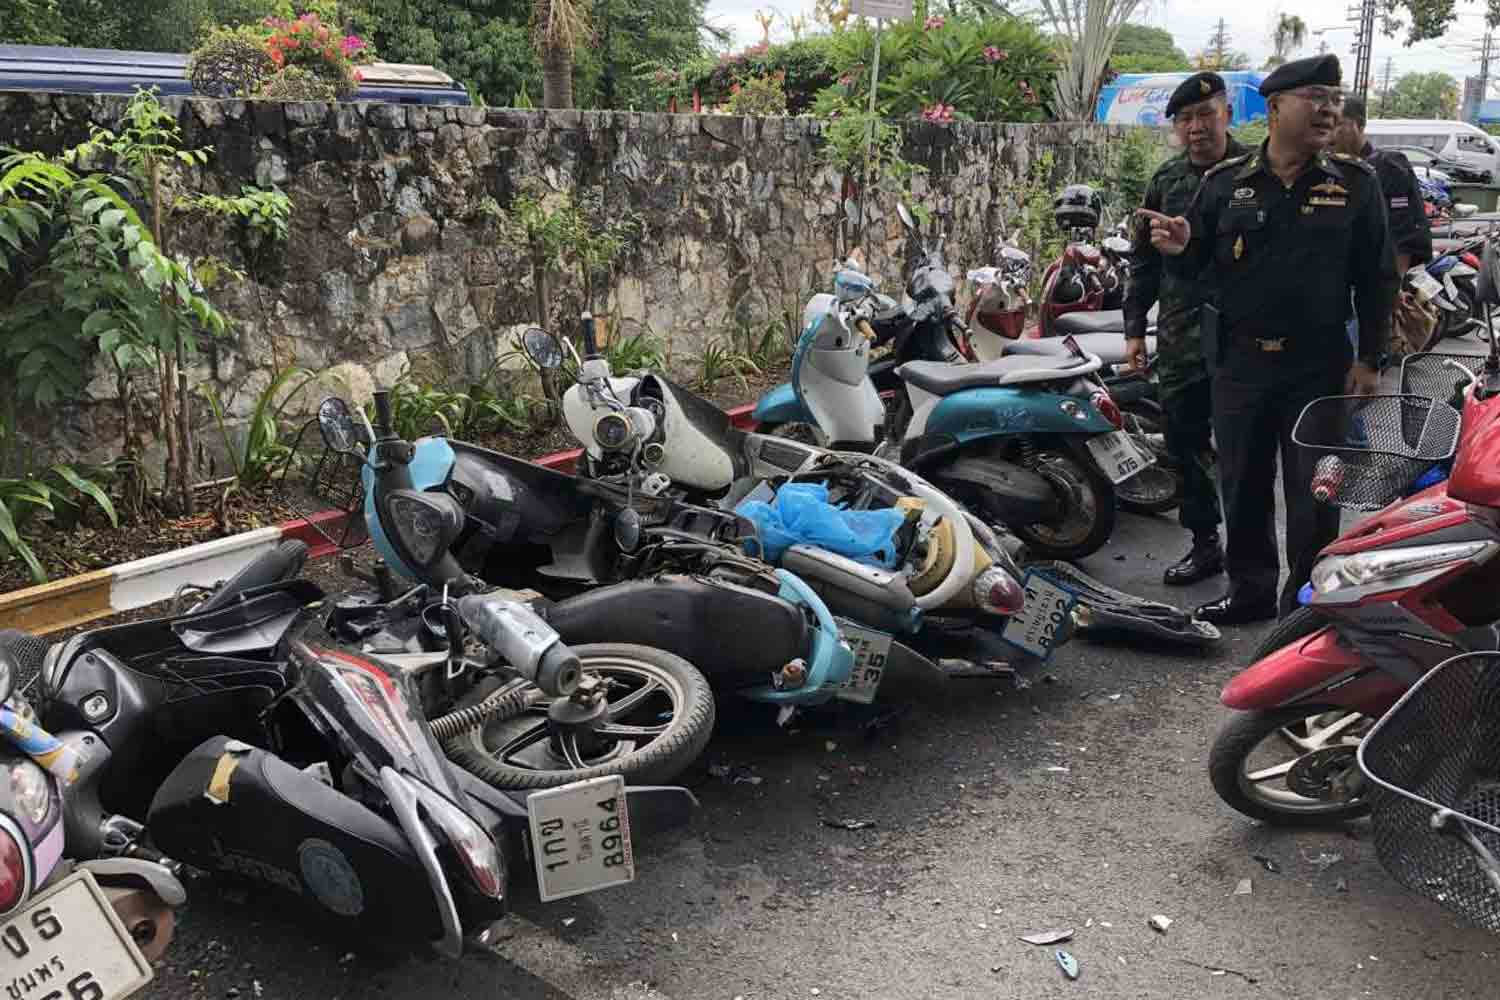 Security officers examine three damaged motorcycles parked at the Hua Hin train station in Prachuap Khiri Khan province on Sunday. A bomb squad shot high-speed jets of water at the bikes, suspecting they contained bombs. (Photo by Chaiwat Satyaem)